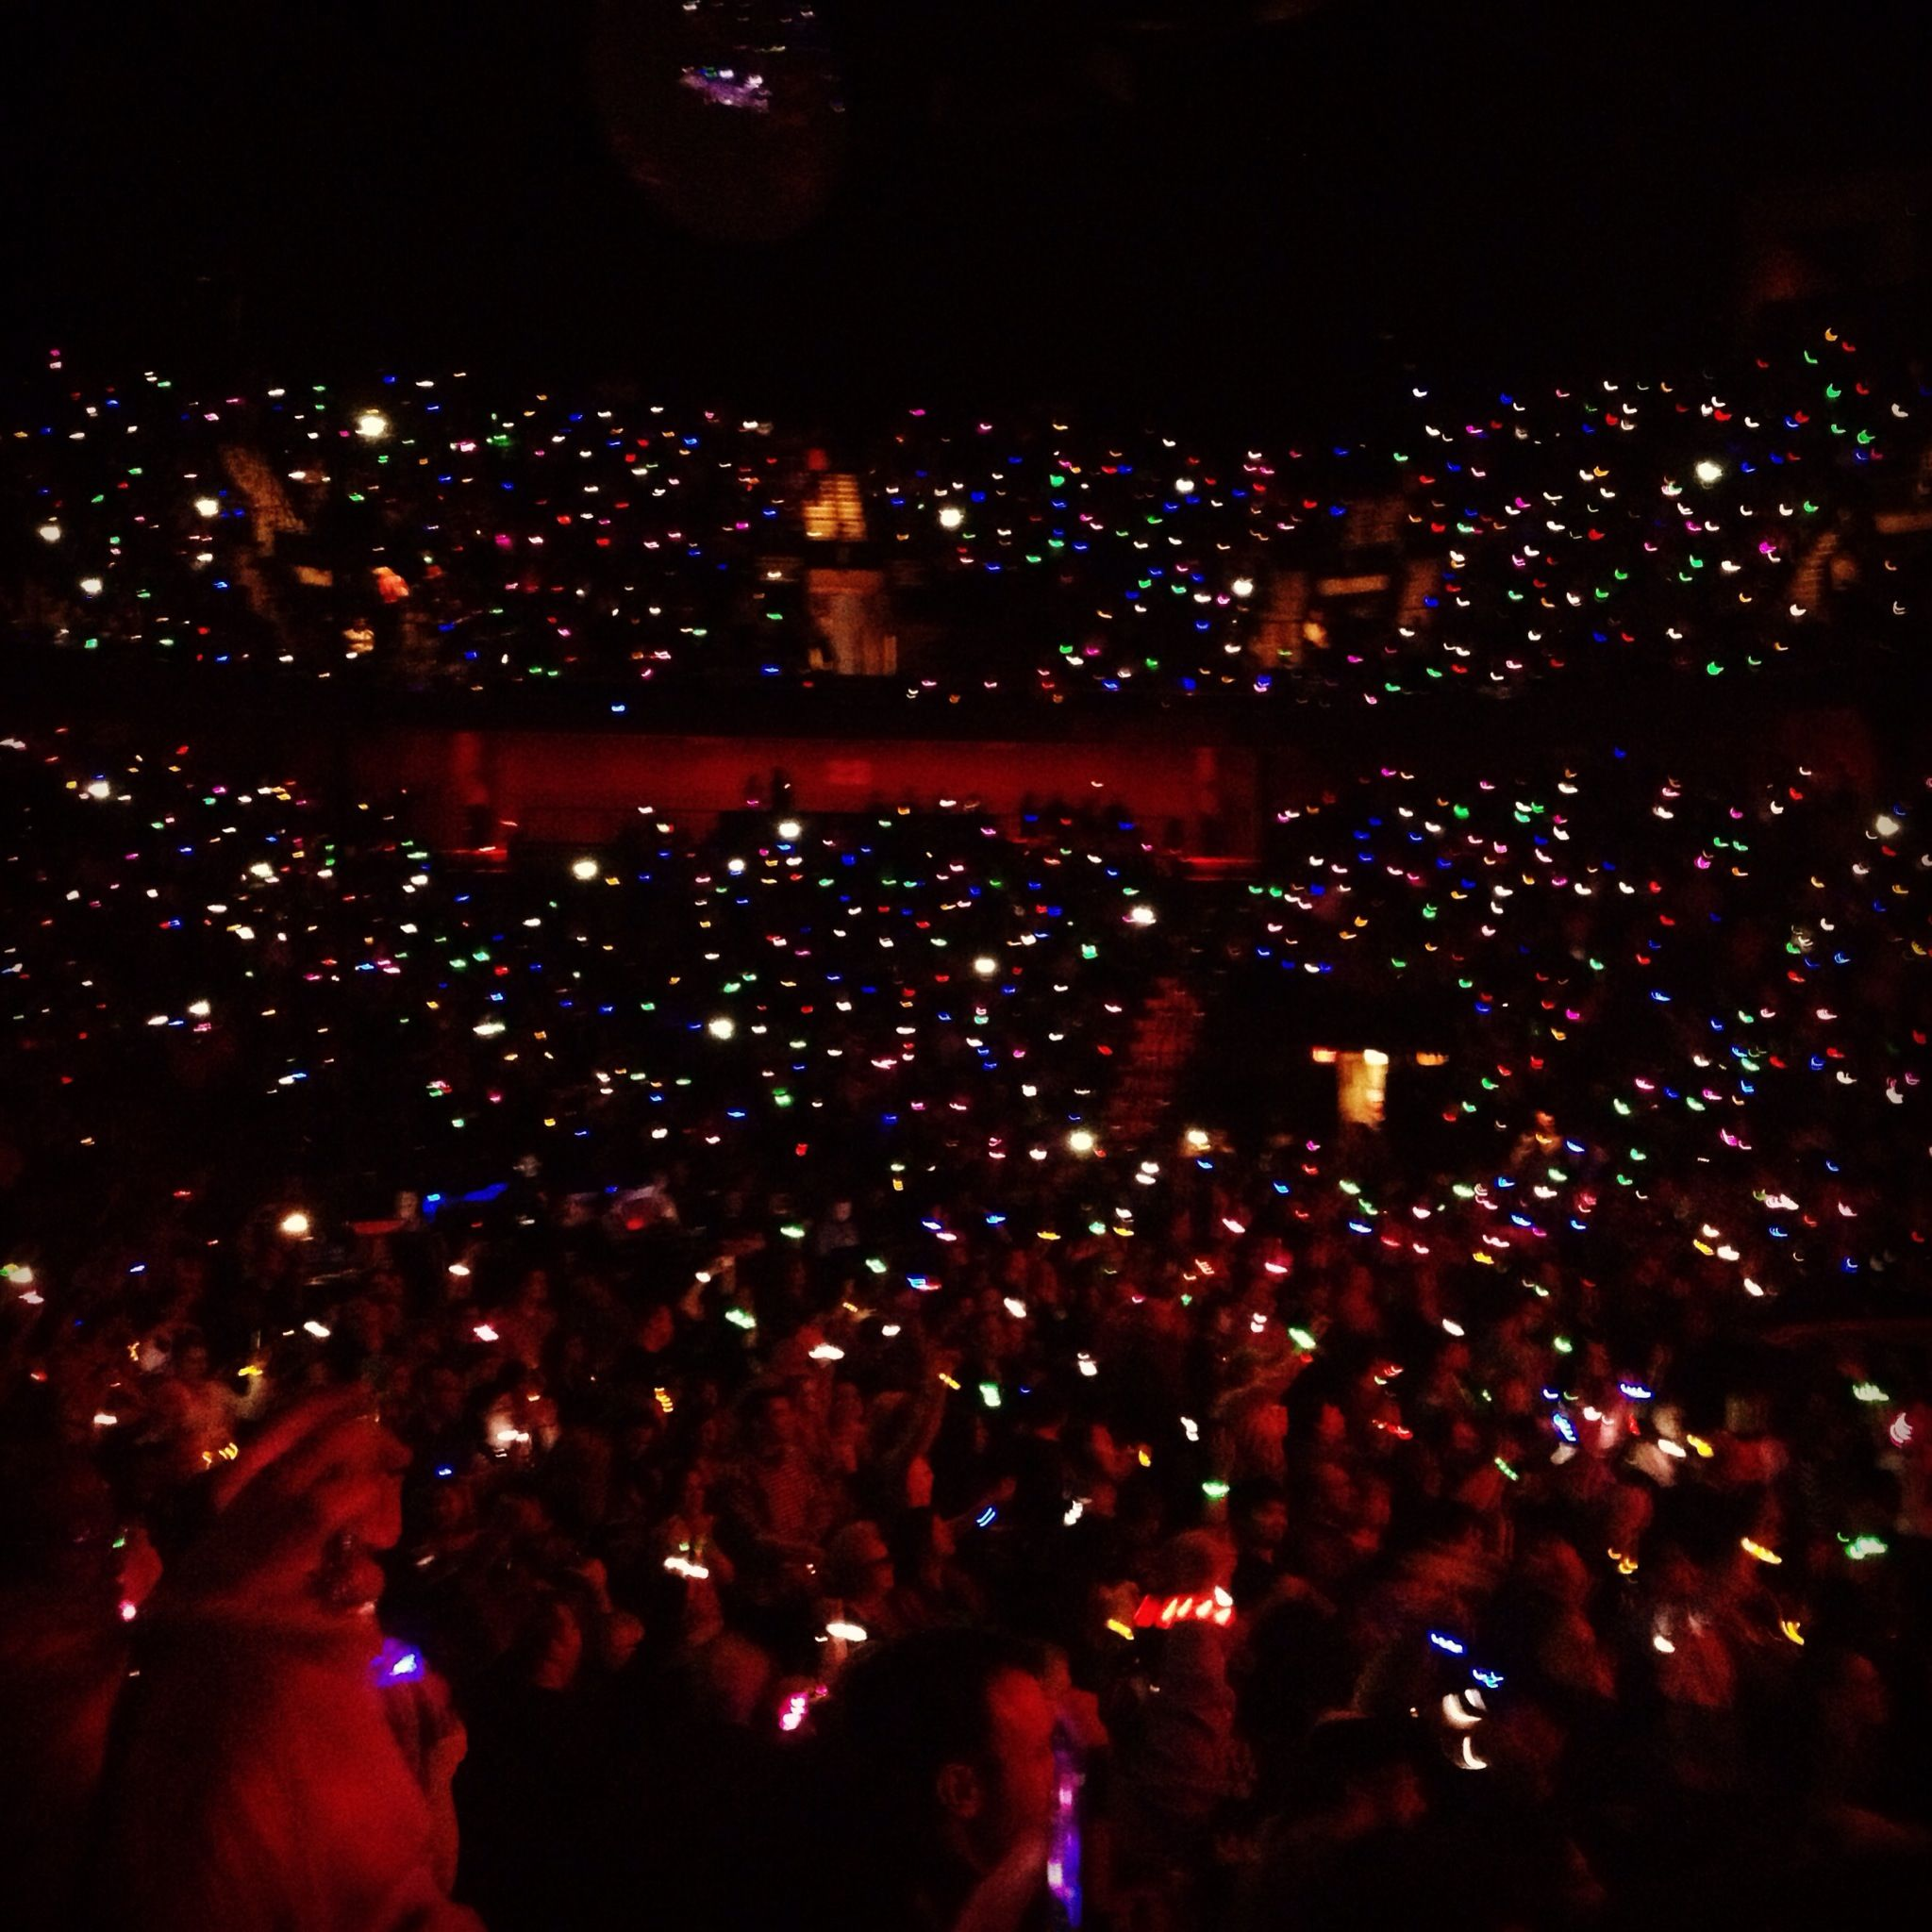 Light Up Bracelets At Coldplay Concert Coldplay Concert Concert Coldplay